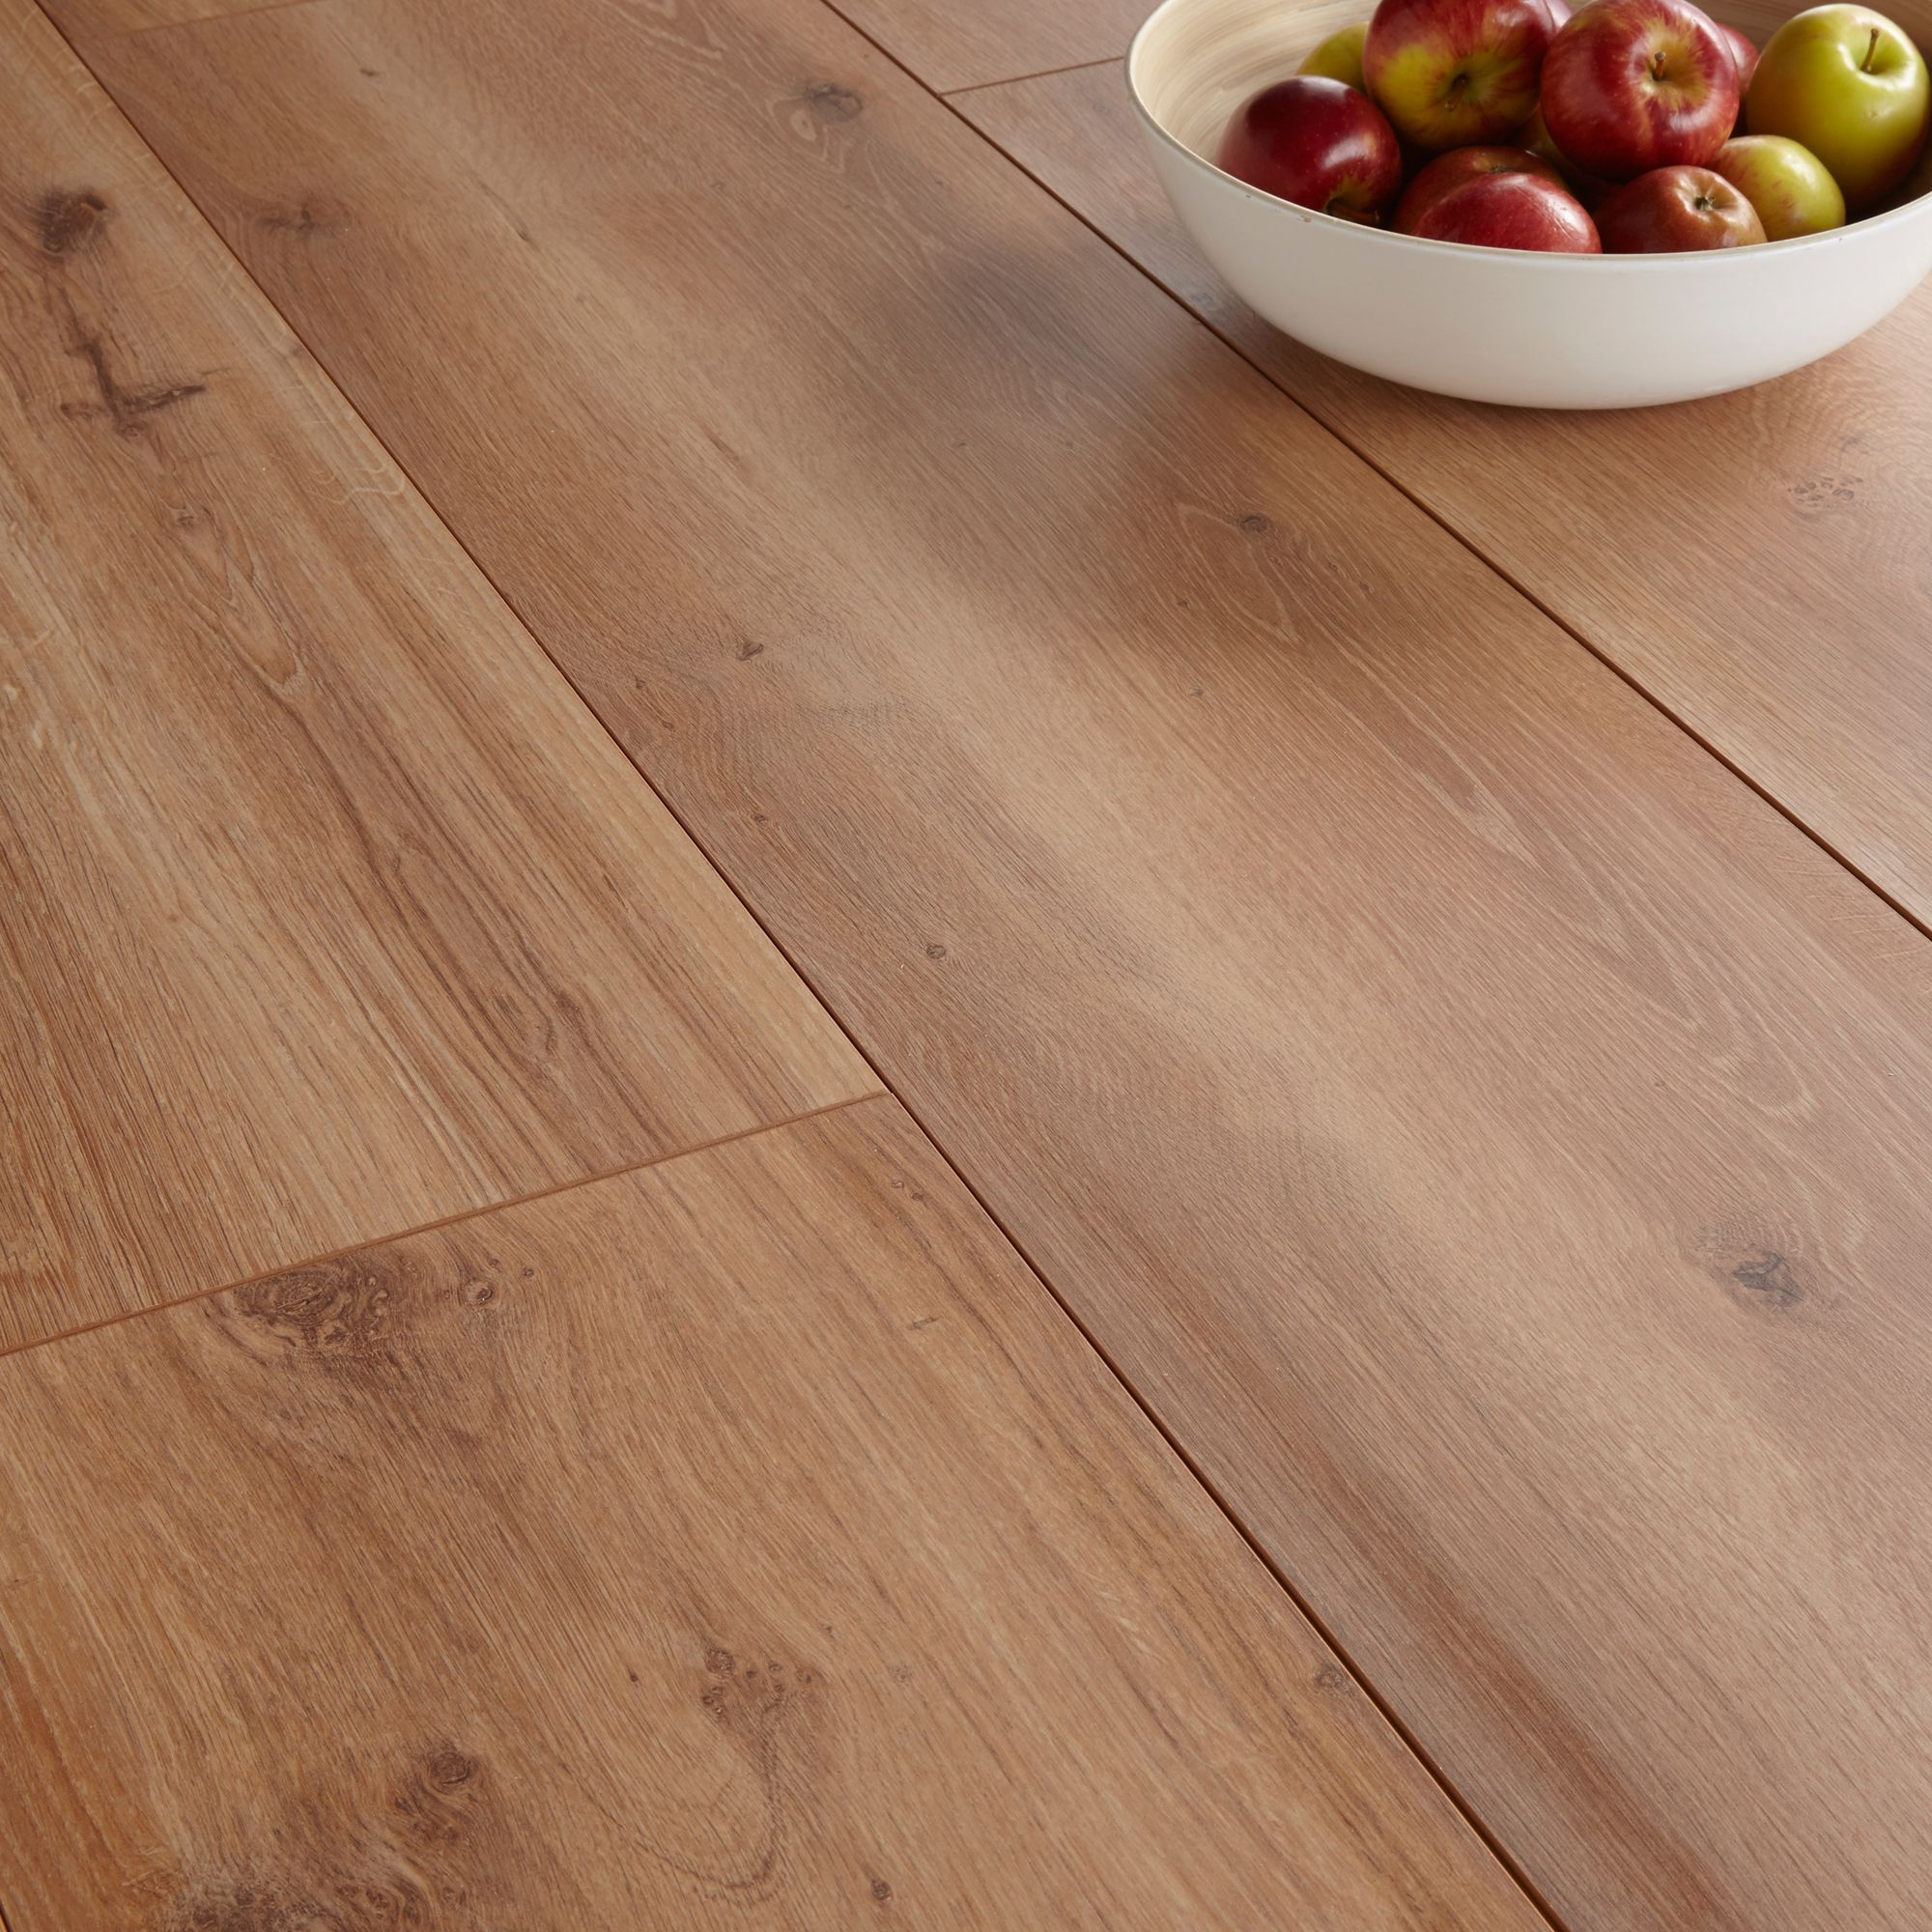 Colours Princeps Oak Effect Wide Plank Laminate Flooring 1.45m² Pack ...